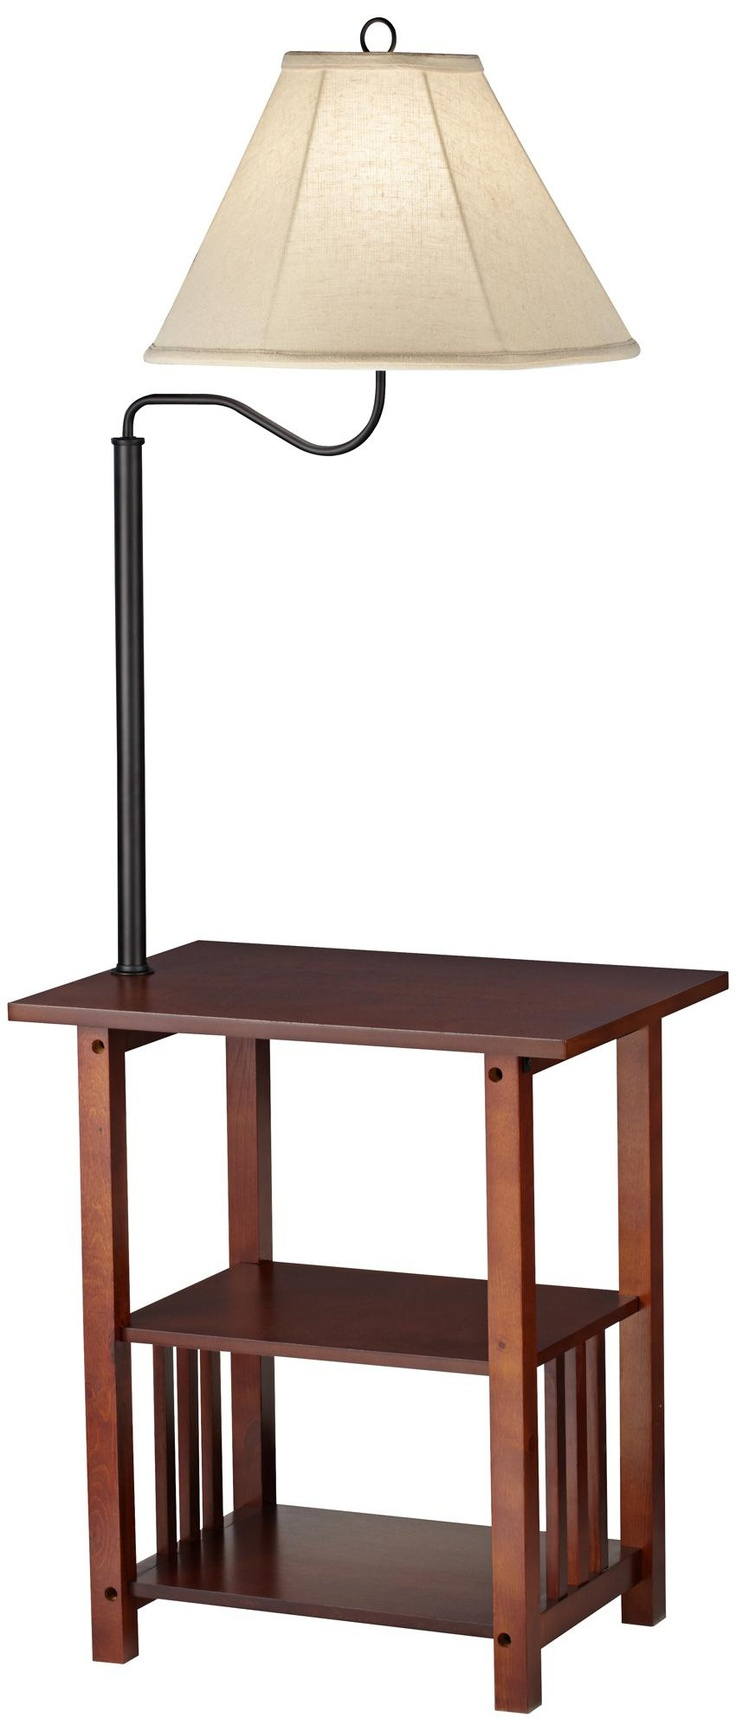 Madra mission style mahogany end table floor lamp httplampsplus com